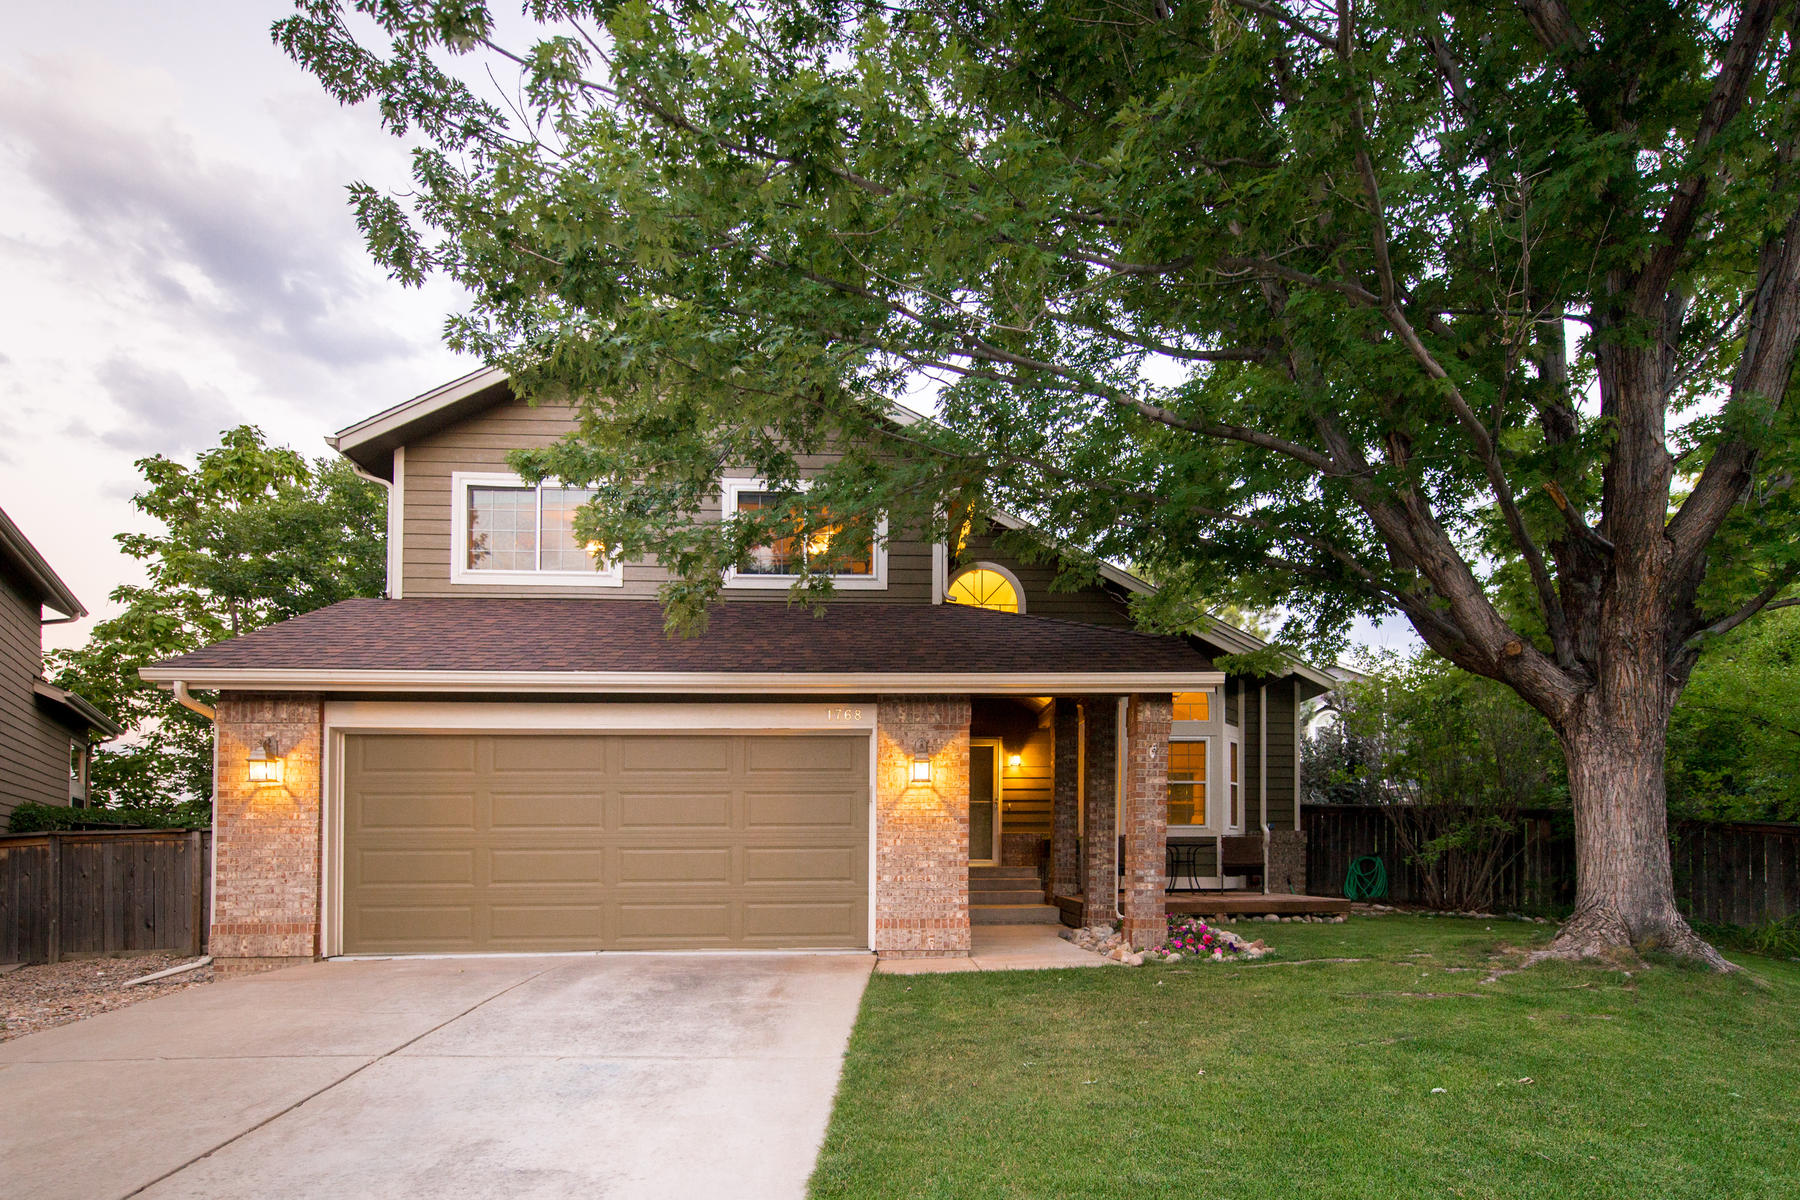 Single Family Home for Active at Immaculate Highlands Ranch home on a huge quarter acre lot! 1768 Jules Ct Highlands Ranch, Colorado 80126 United States